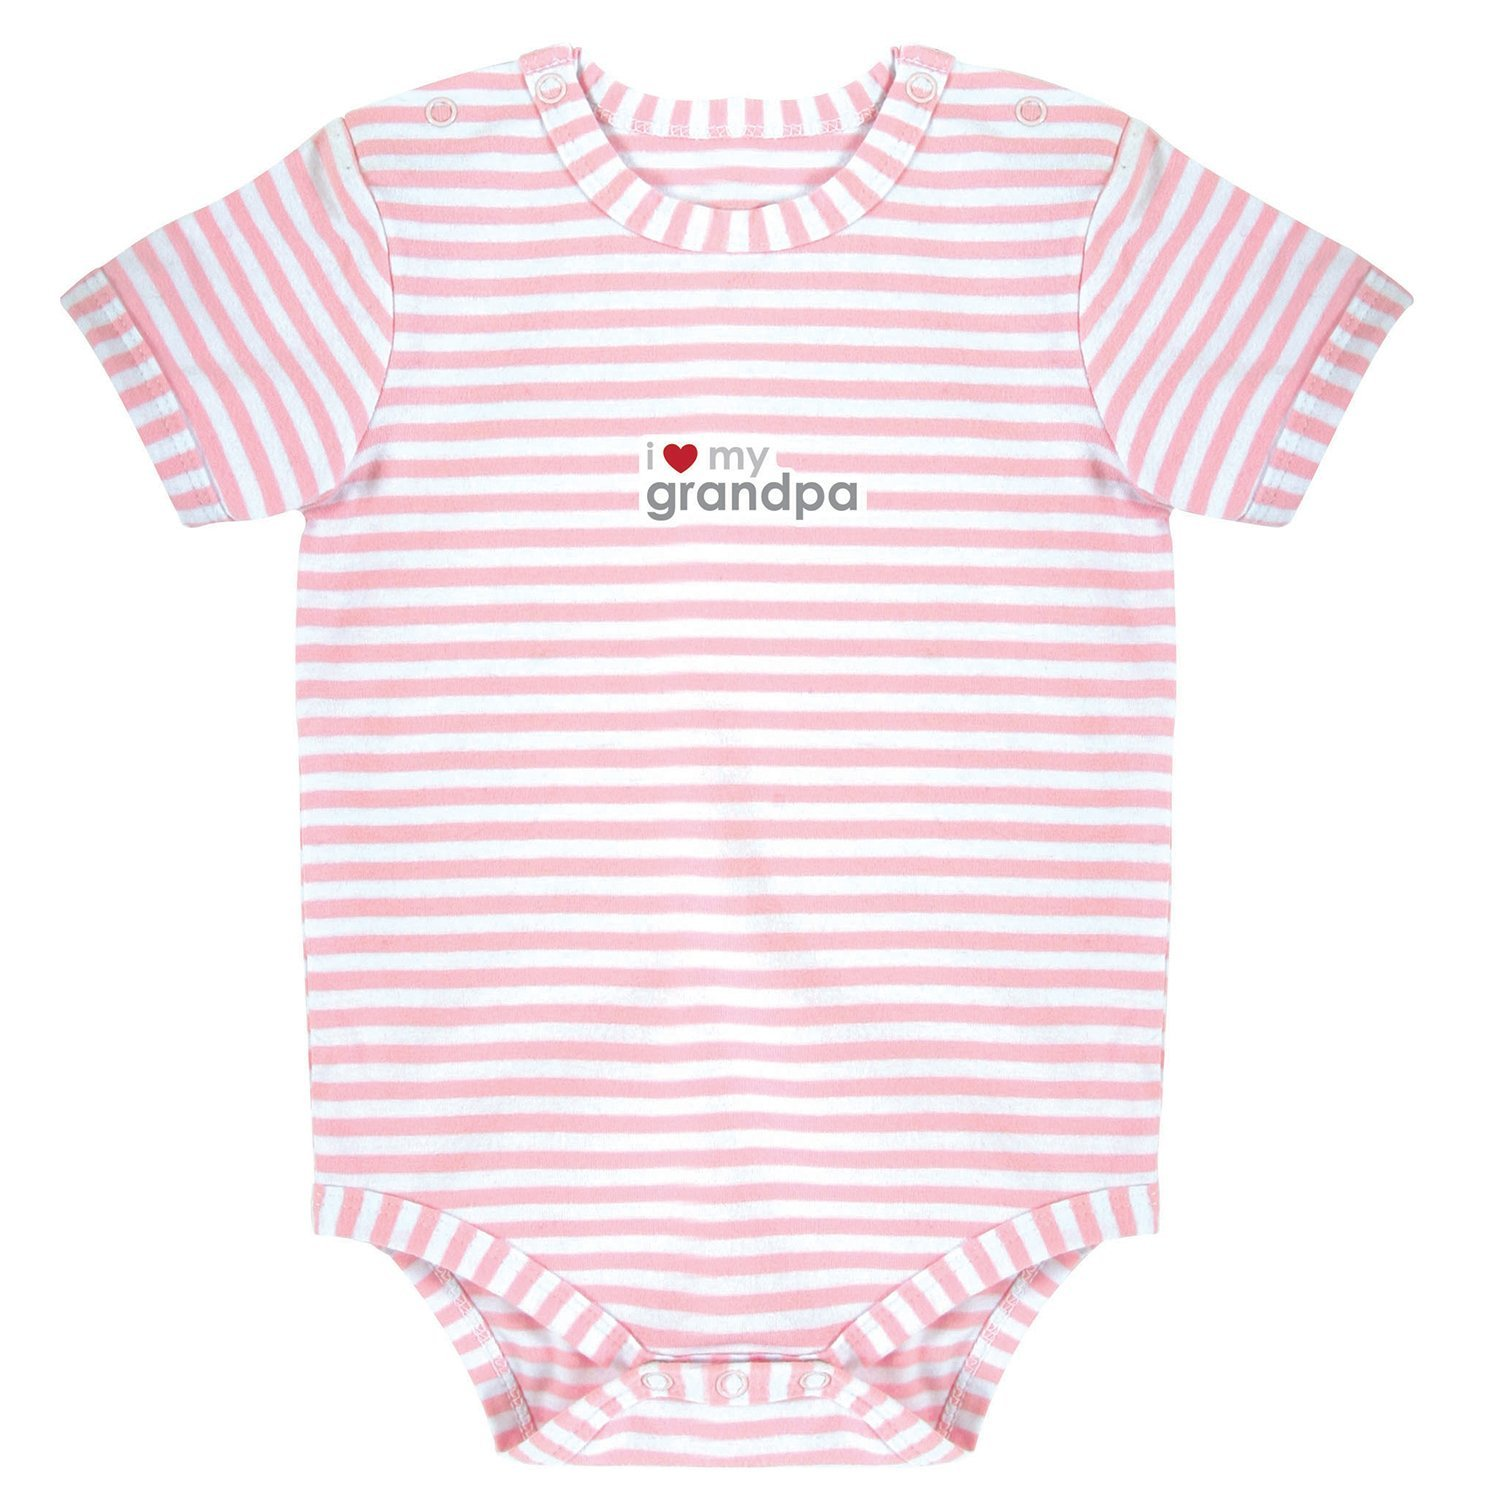 Stephan Baby Pink Stripe Snapshirt-Style Diaper Cover, I Love My Grandpa, 0-3 Months